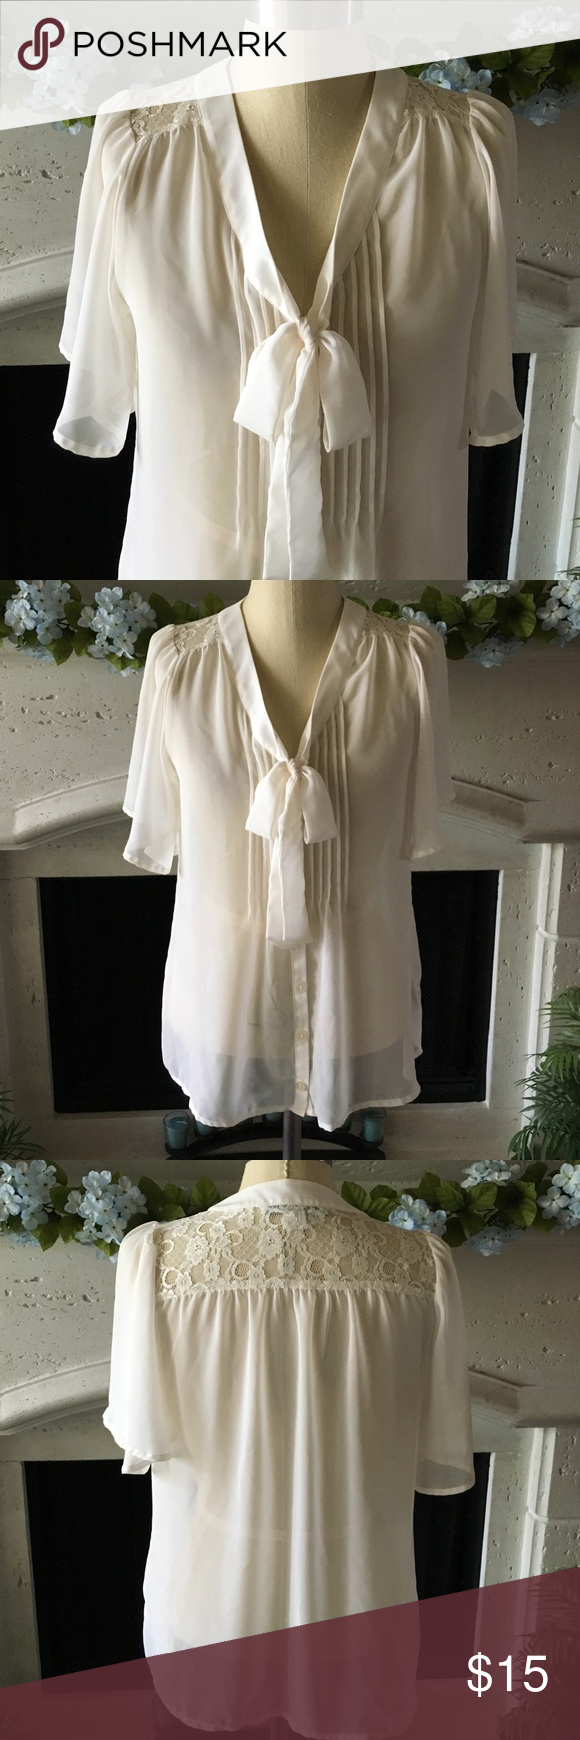 Forever 21 Tie Front Blouse Forever 21 Tie Front Blouse in a size M! NWOT! 100% polyester. Forever 21 Tops Tees - Short Sleeve